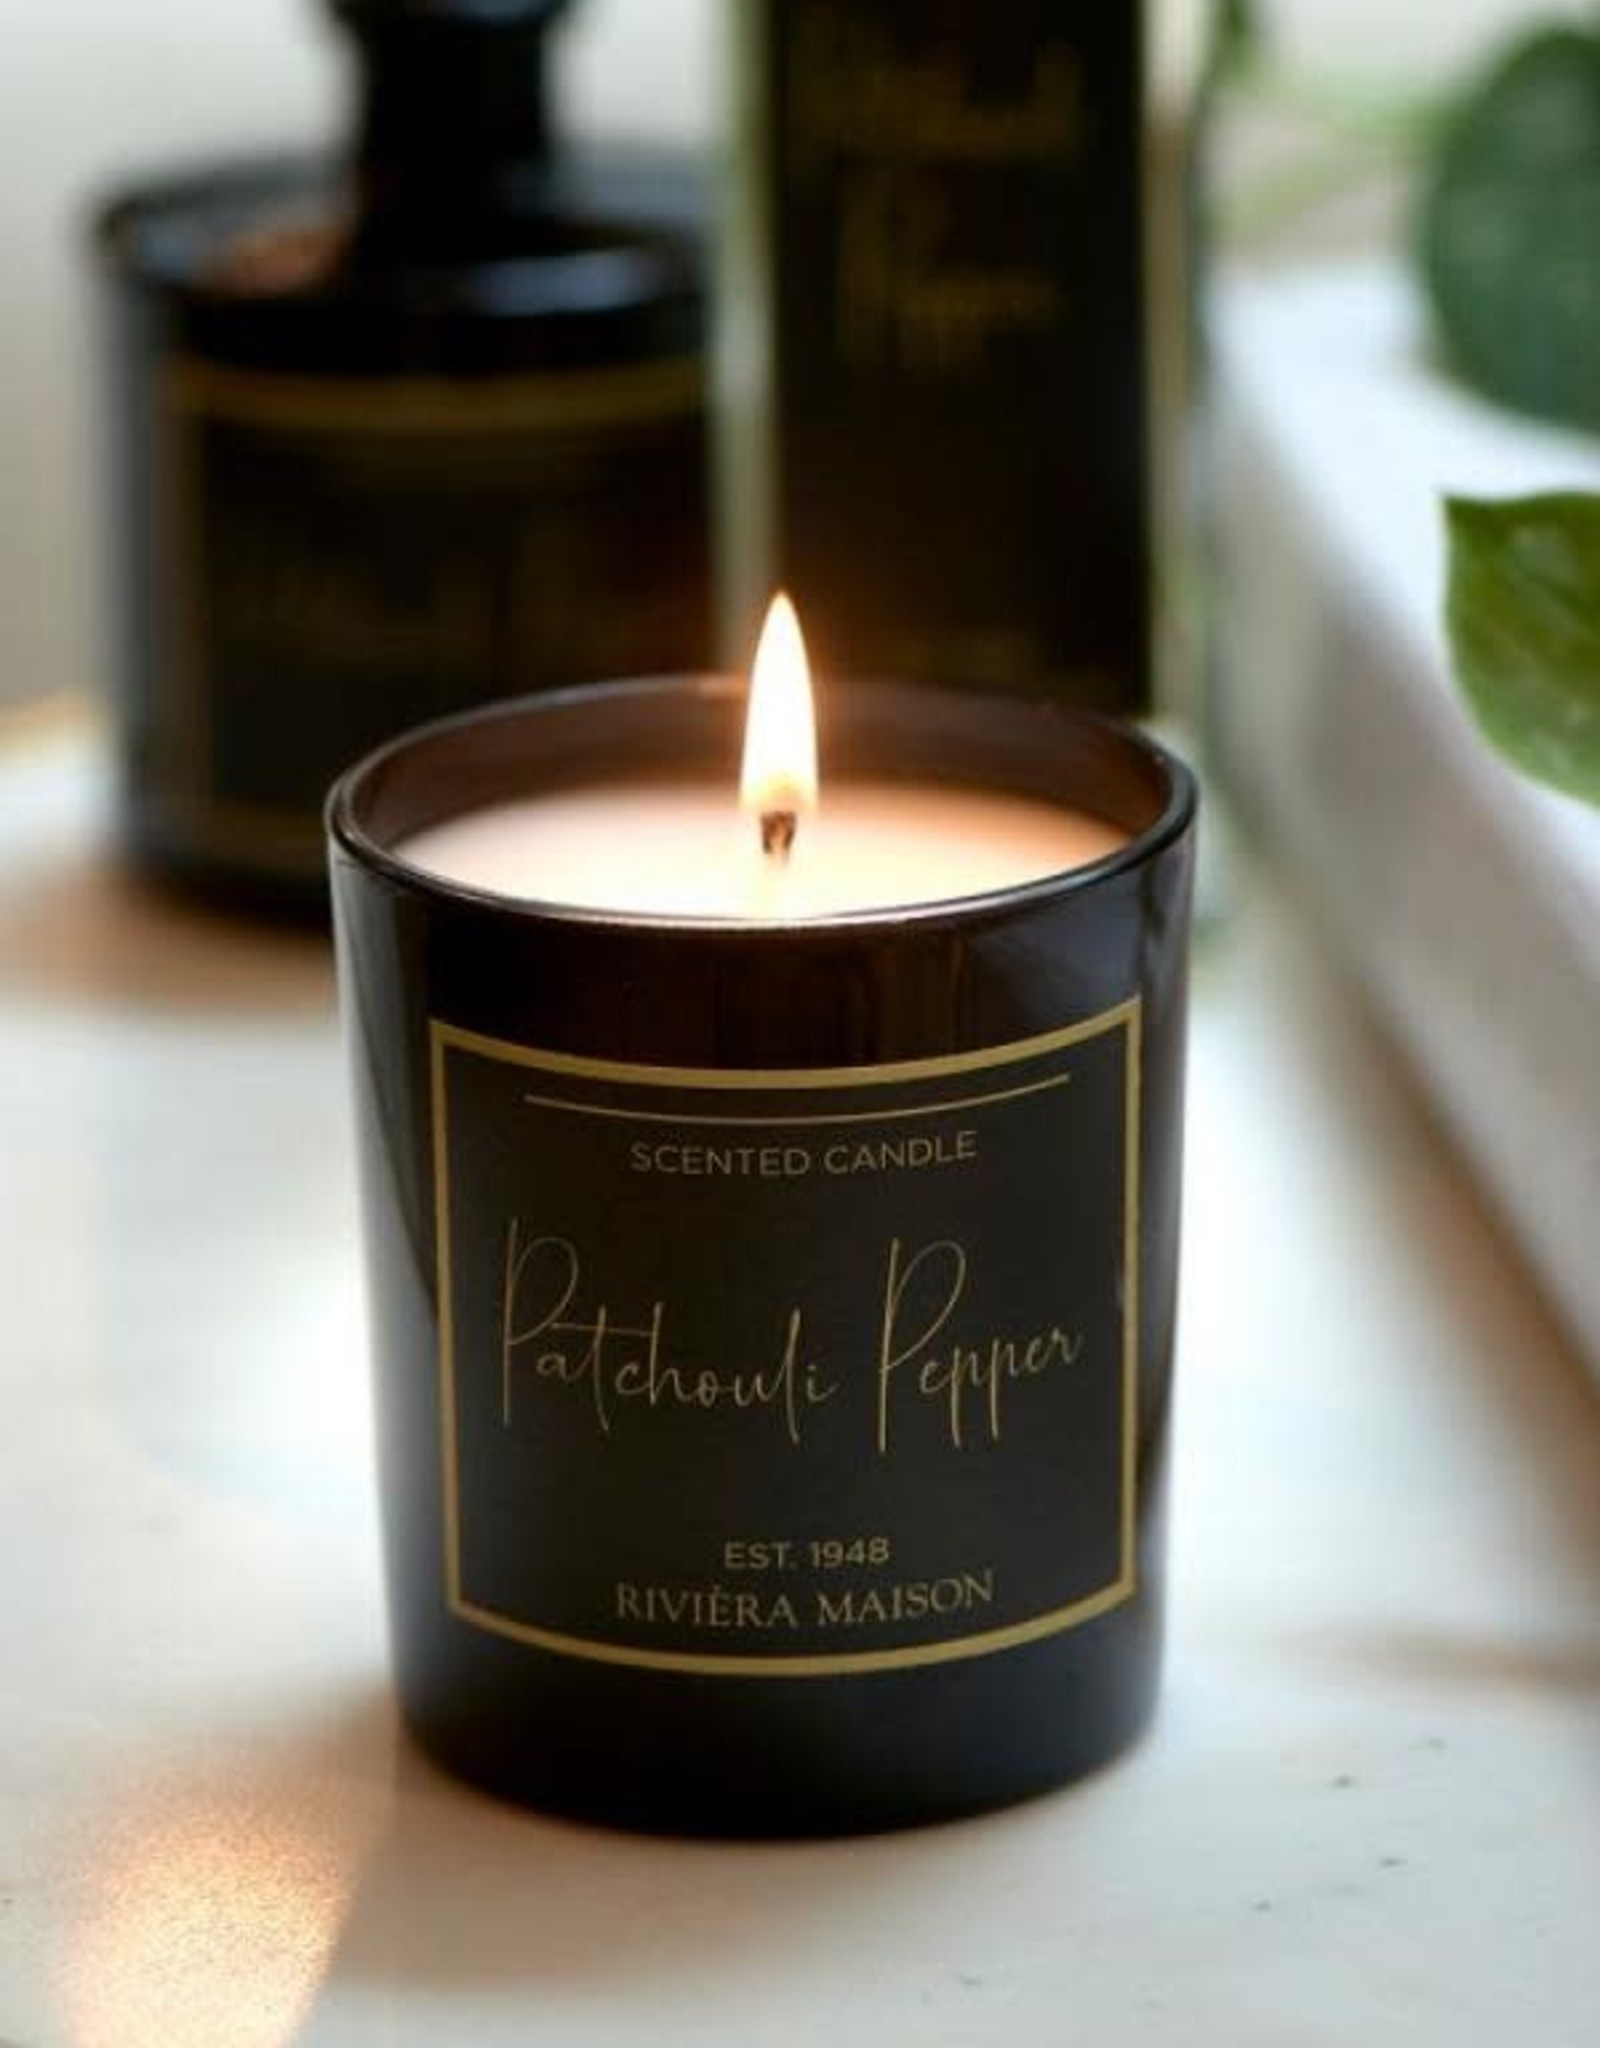 Rivièra Maison RM Patchouli Pepper Scented Candle